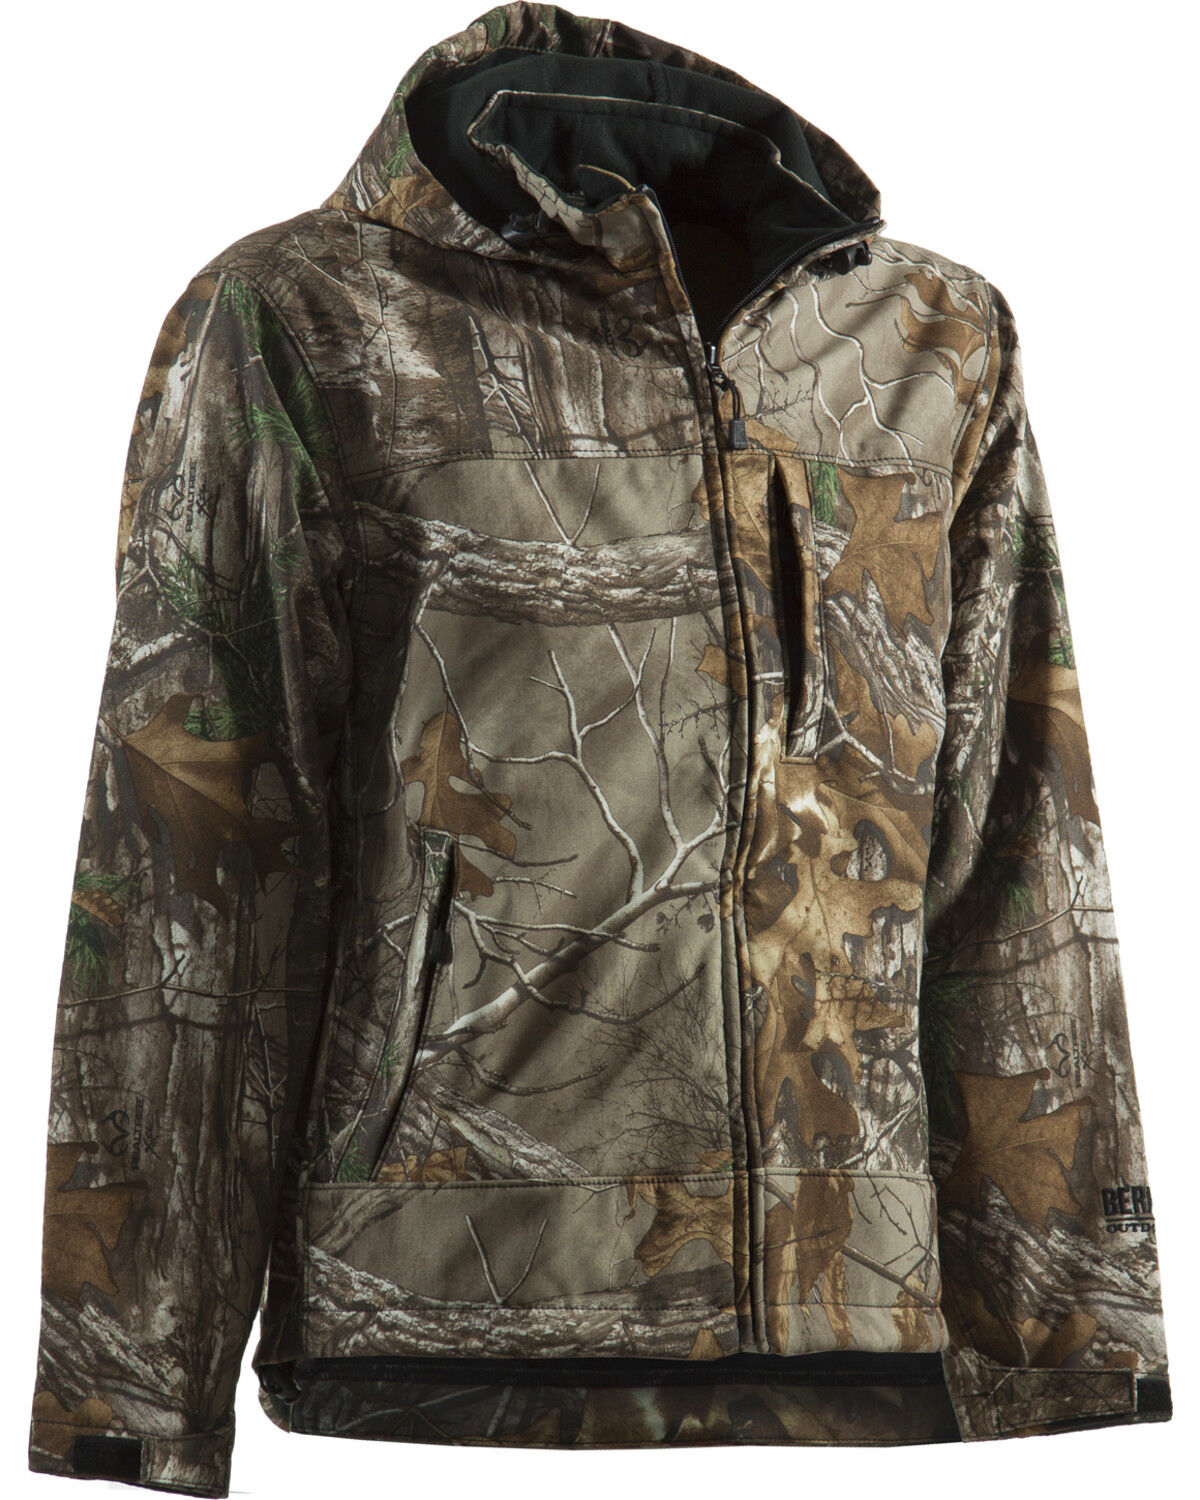 Berne Shedhorn Realtree Camo Softshell Jacket   3XL And 4XL, Camouflage,  Hi Res